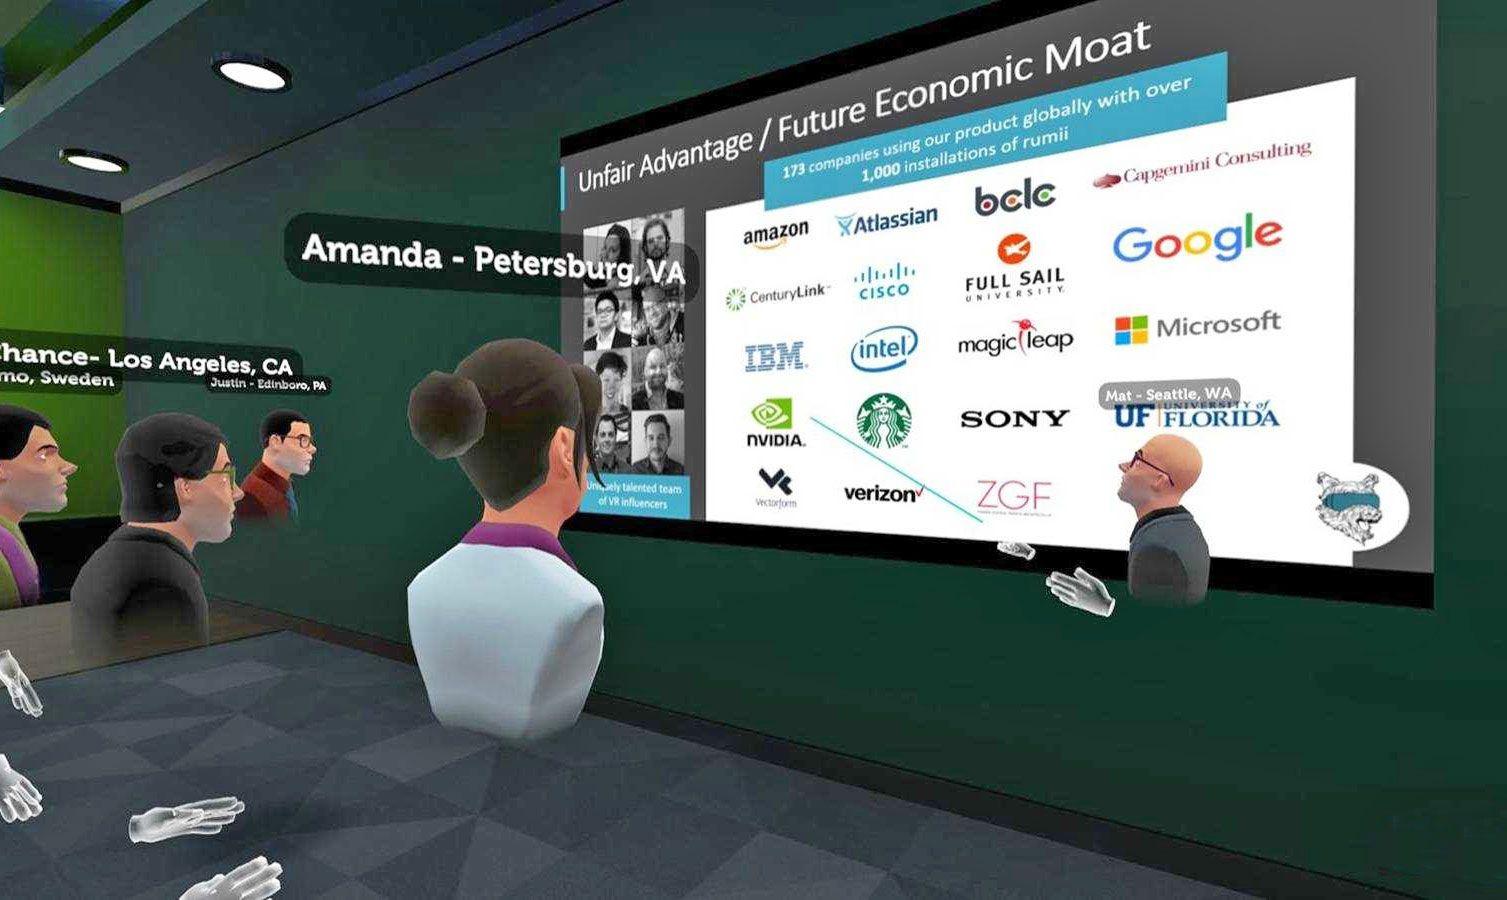 Full Sail Taps Vr To Help Online Students Feel Less Isolated For Full Sail University Class Schedule